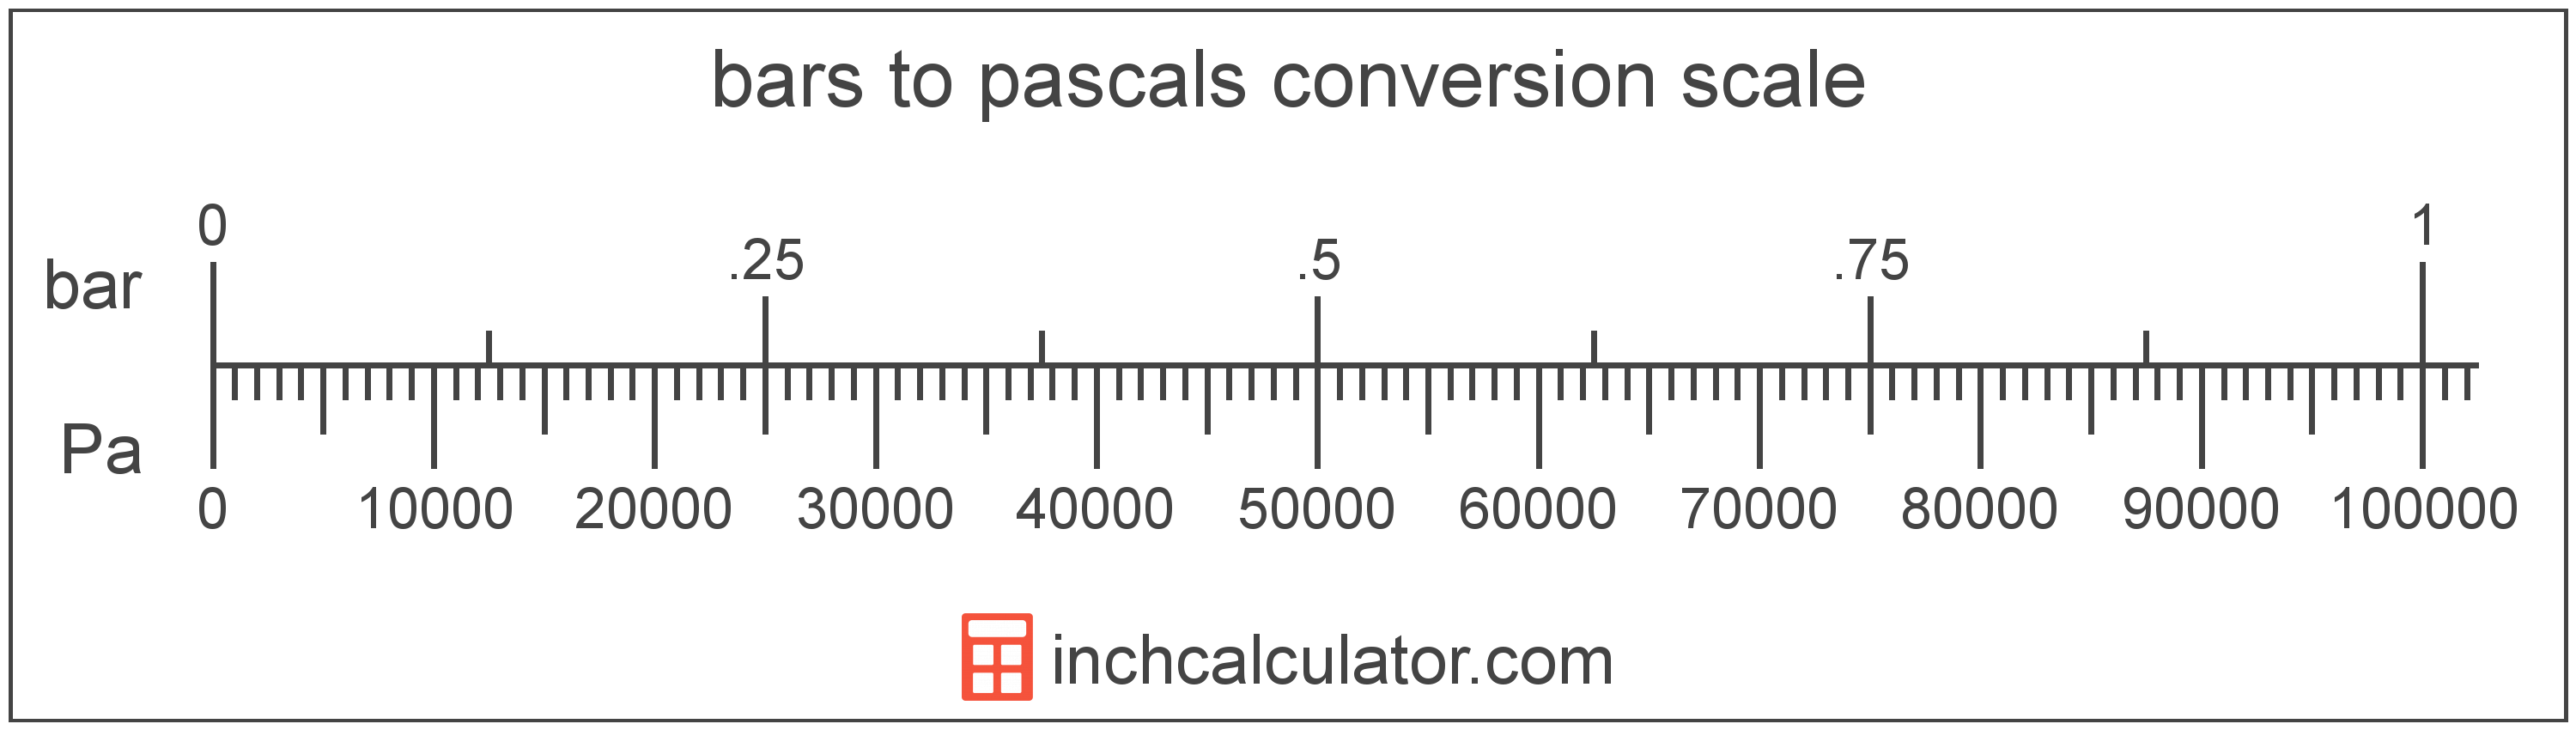 Pascals To Bars Conversion Pa To Bar